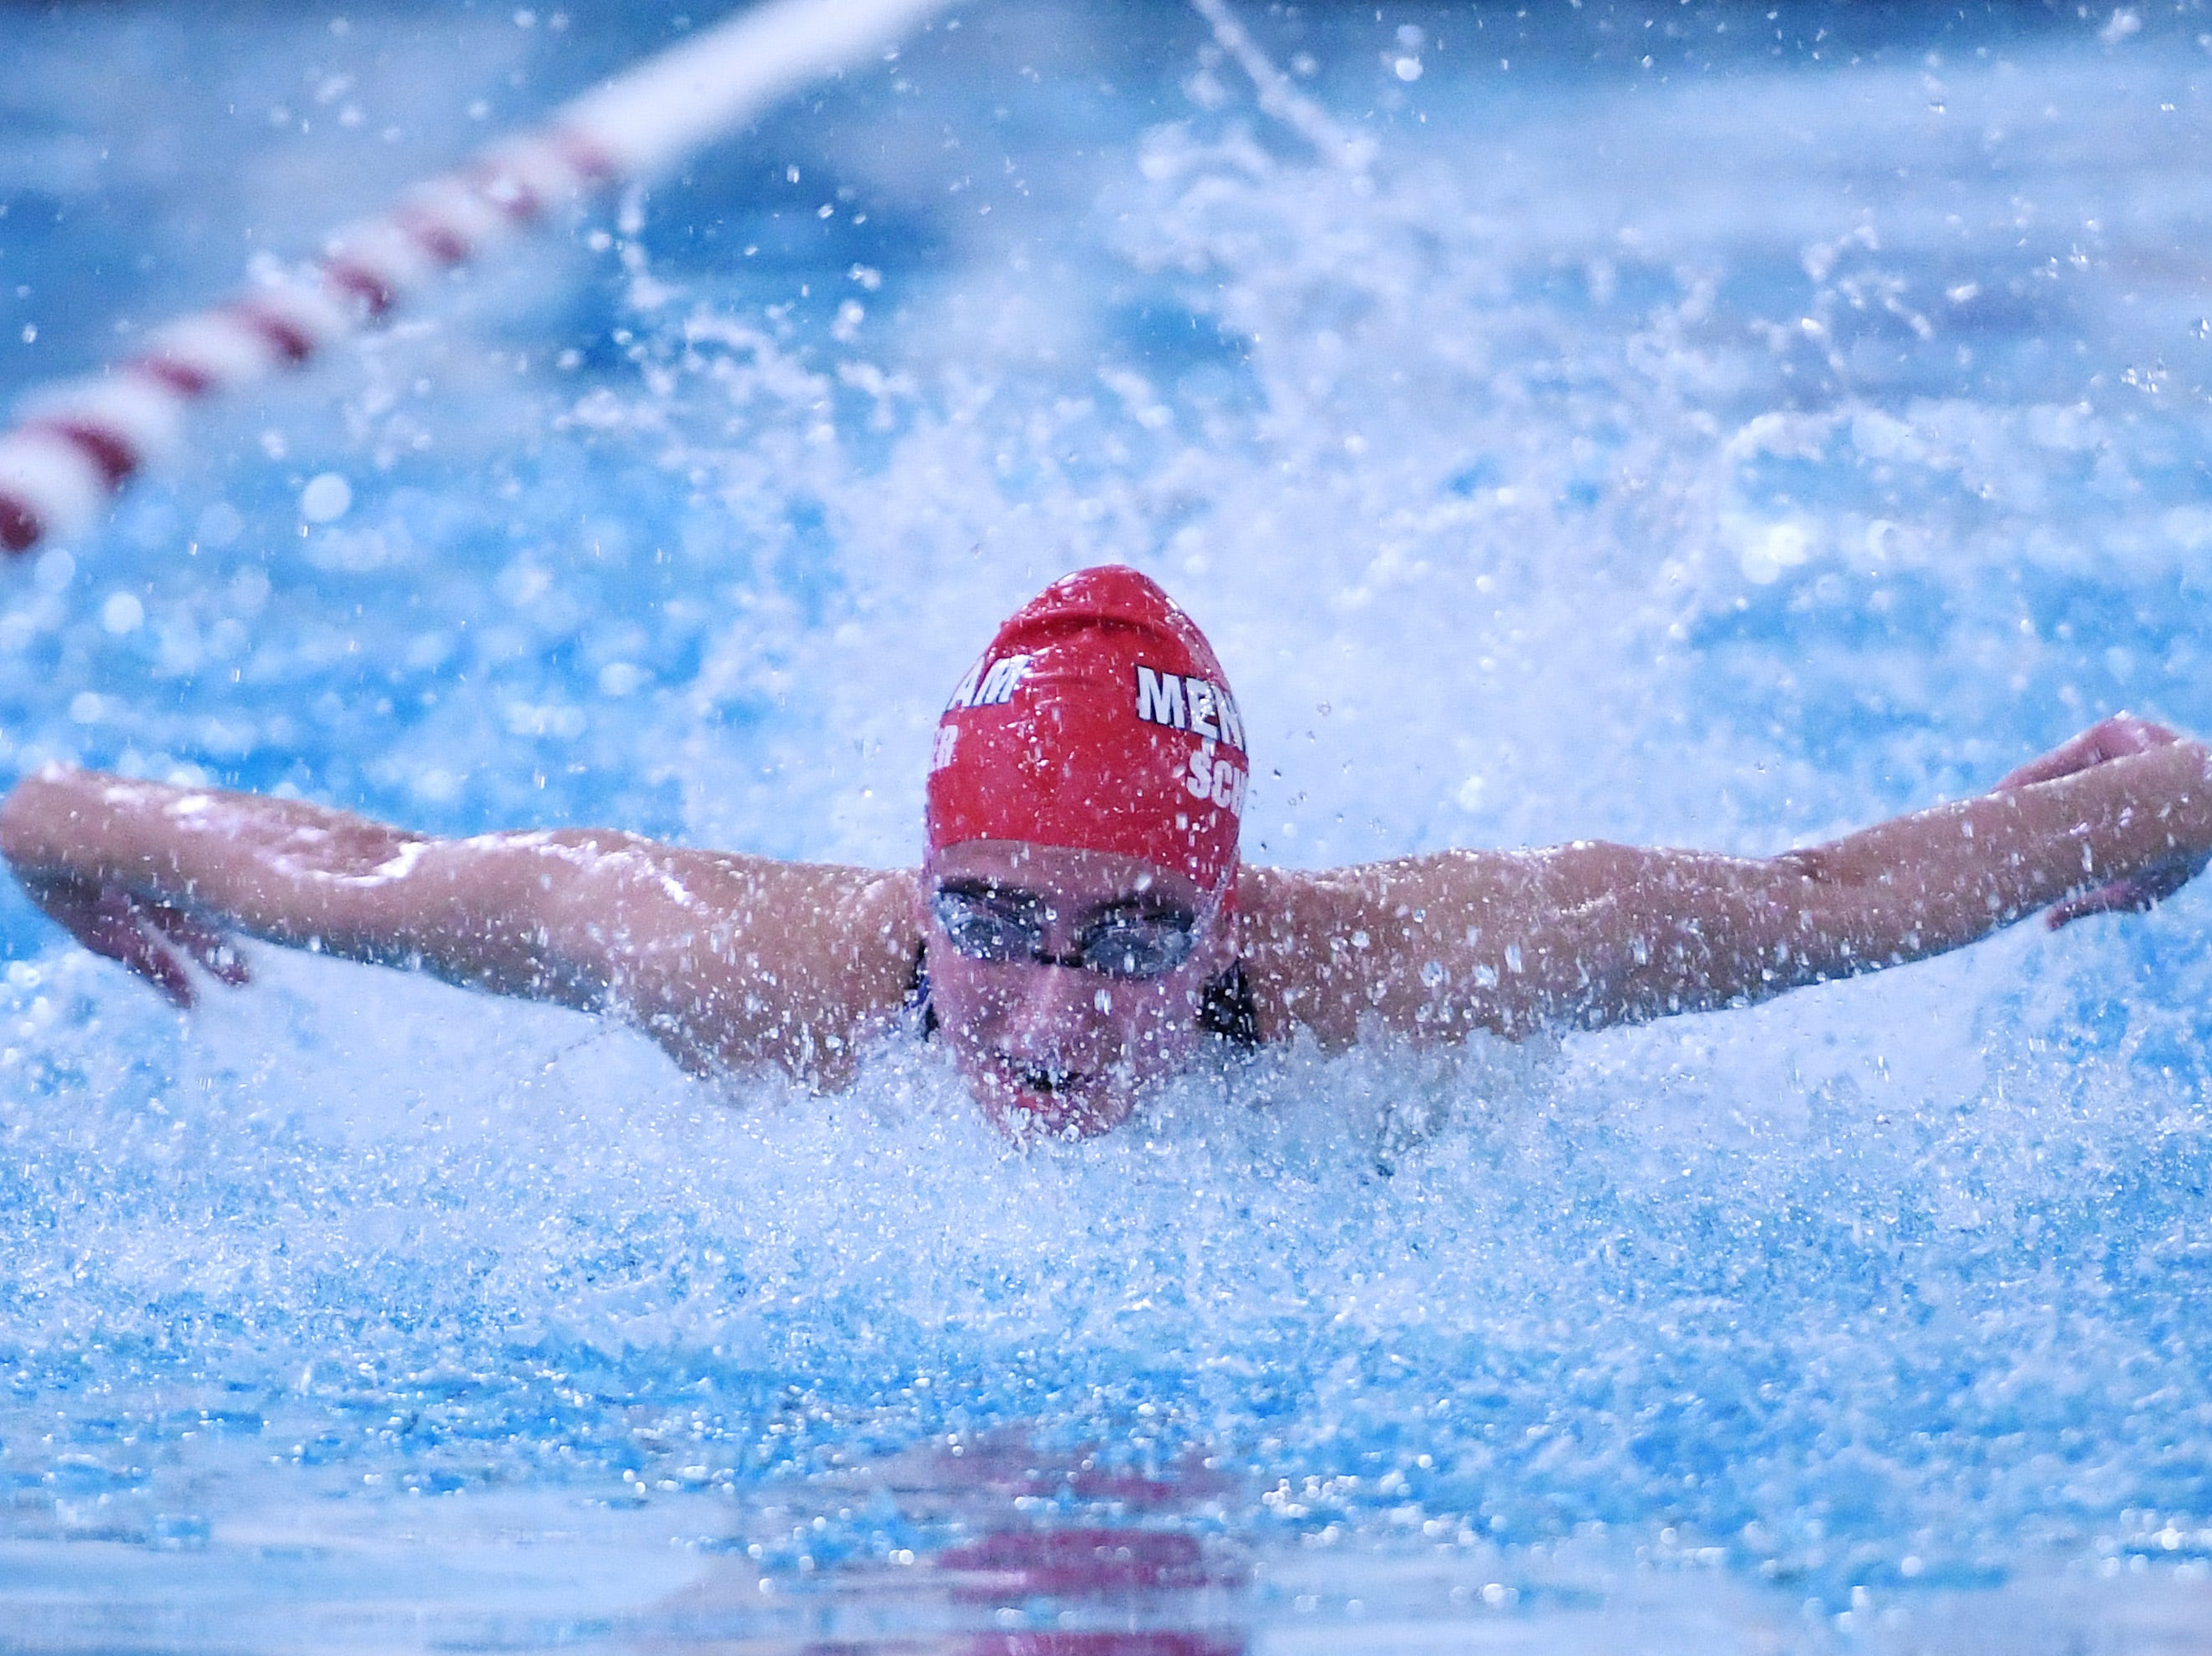 Aanika Schueler of Mendham swims the 100-meter butterfly during the Morris County Championships at Morristown High School on Saturday, January 26, 2019.